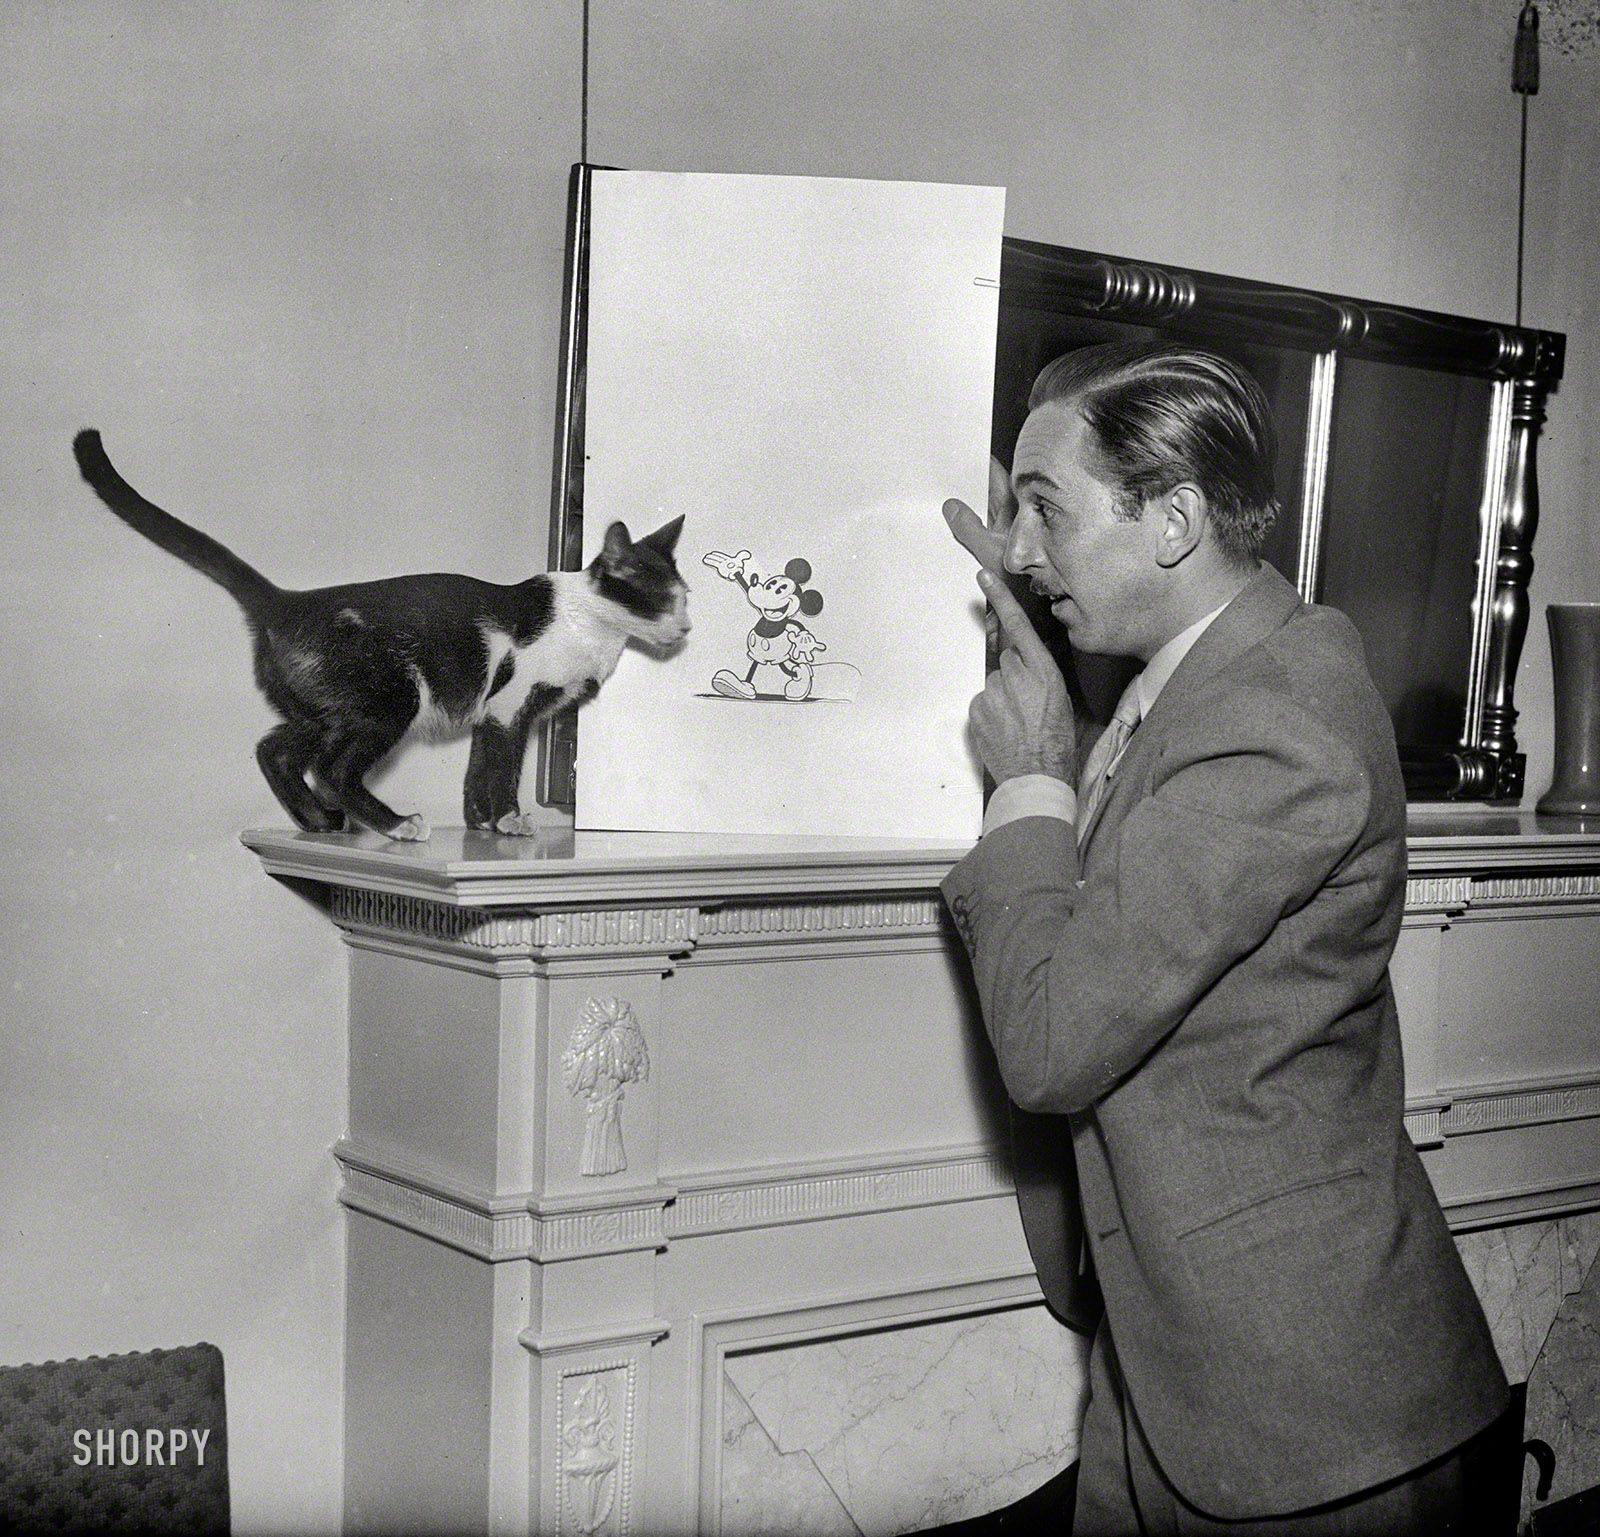 Walt Disney explaining Mickey Mouse to a cat in 1931. [1,600 × 1,537]